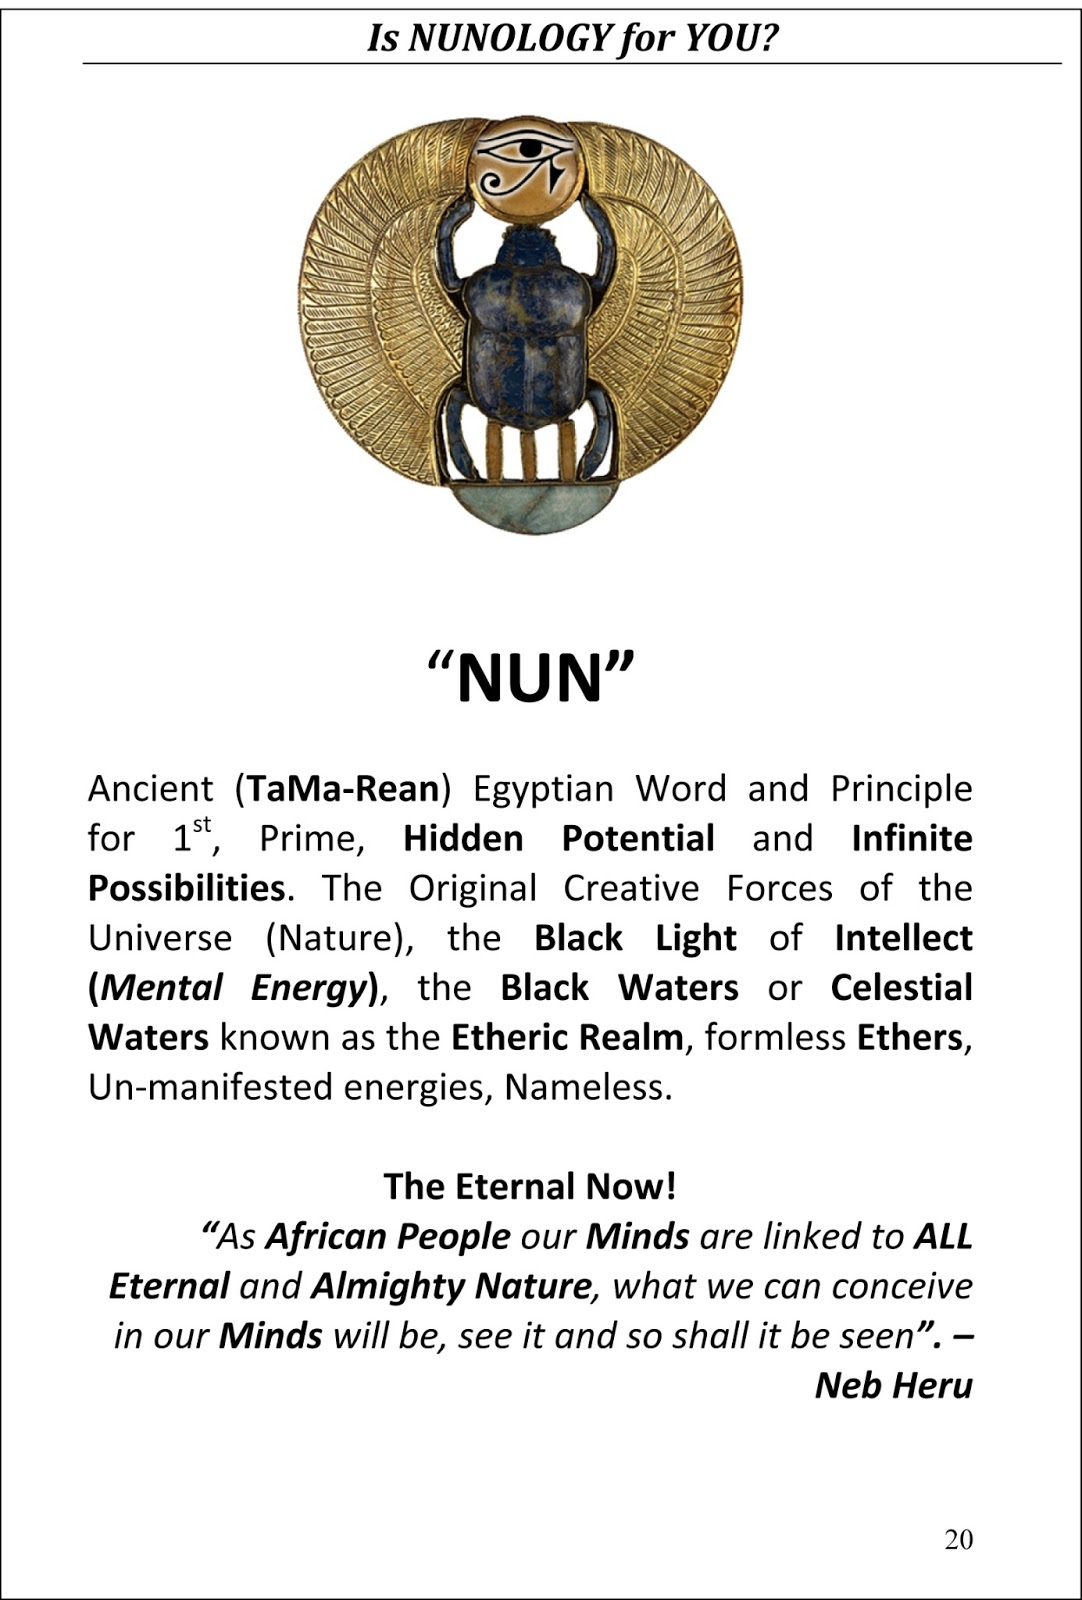 The eternal temple of nuninc the symbol of nunology made sacred symbol found on page 20 in is nunology for you copywrite 2010 eton usa buycottarizona